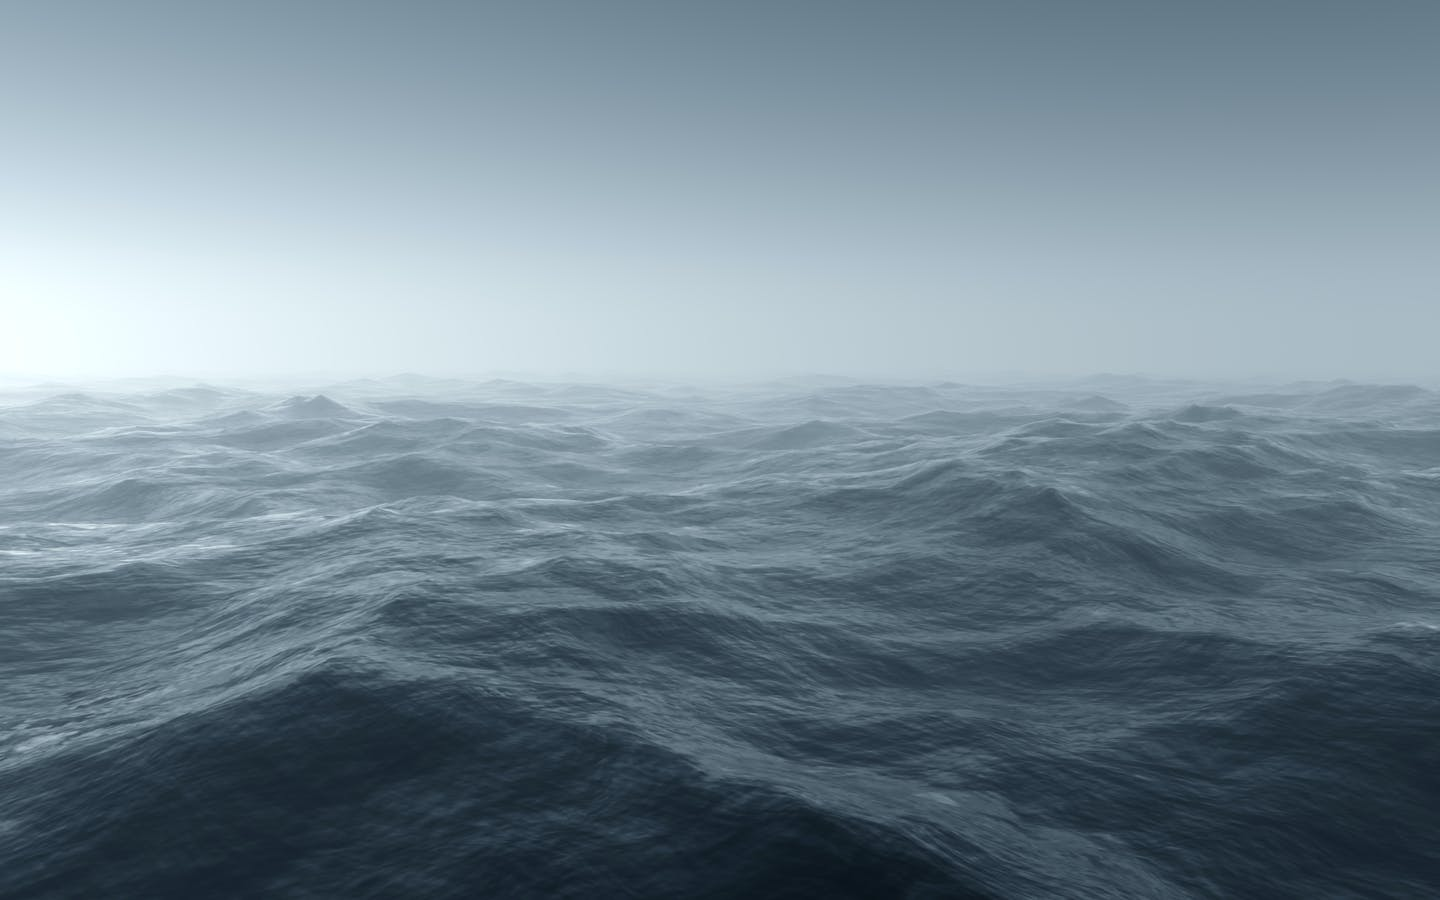 Rough, stormy ocean surface.